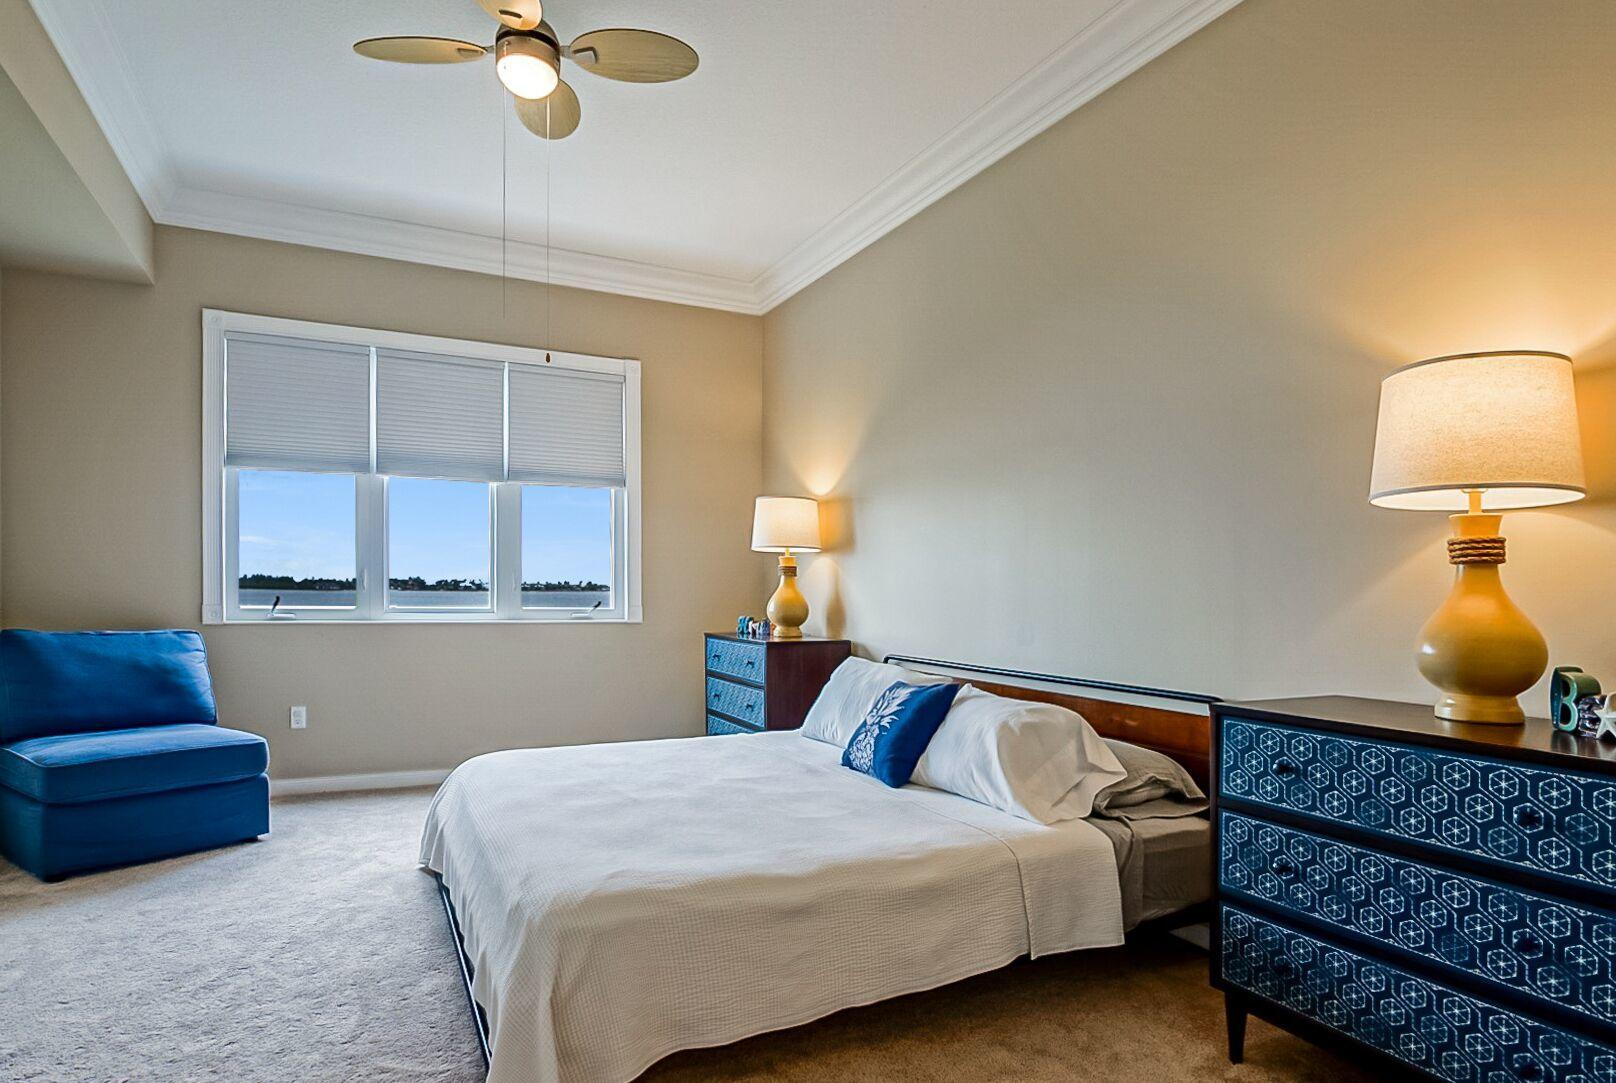 HARBOUR ISLE AT HUTCHINSON ISLAND WEST (OR 2388-2954) UNIT 302 BLDG 21 (OR 4034-882)